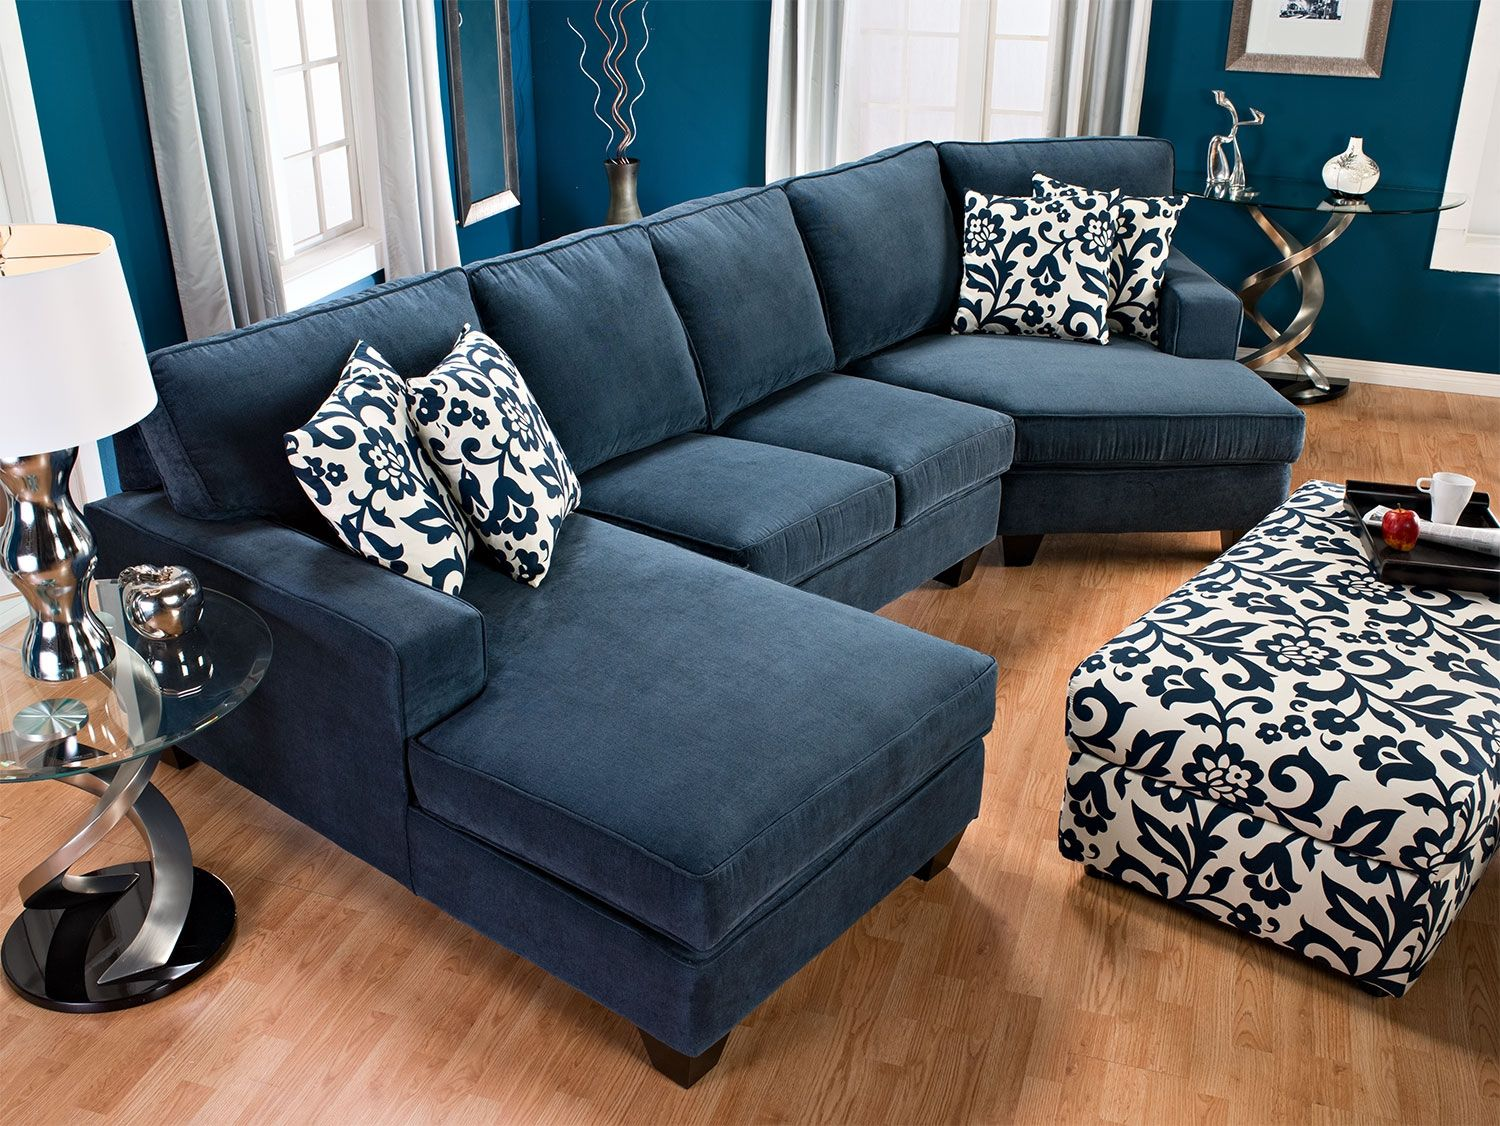 Sofa Sectionnel Dax De La Collection Design Mon Image 3 Pices